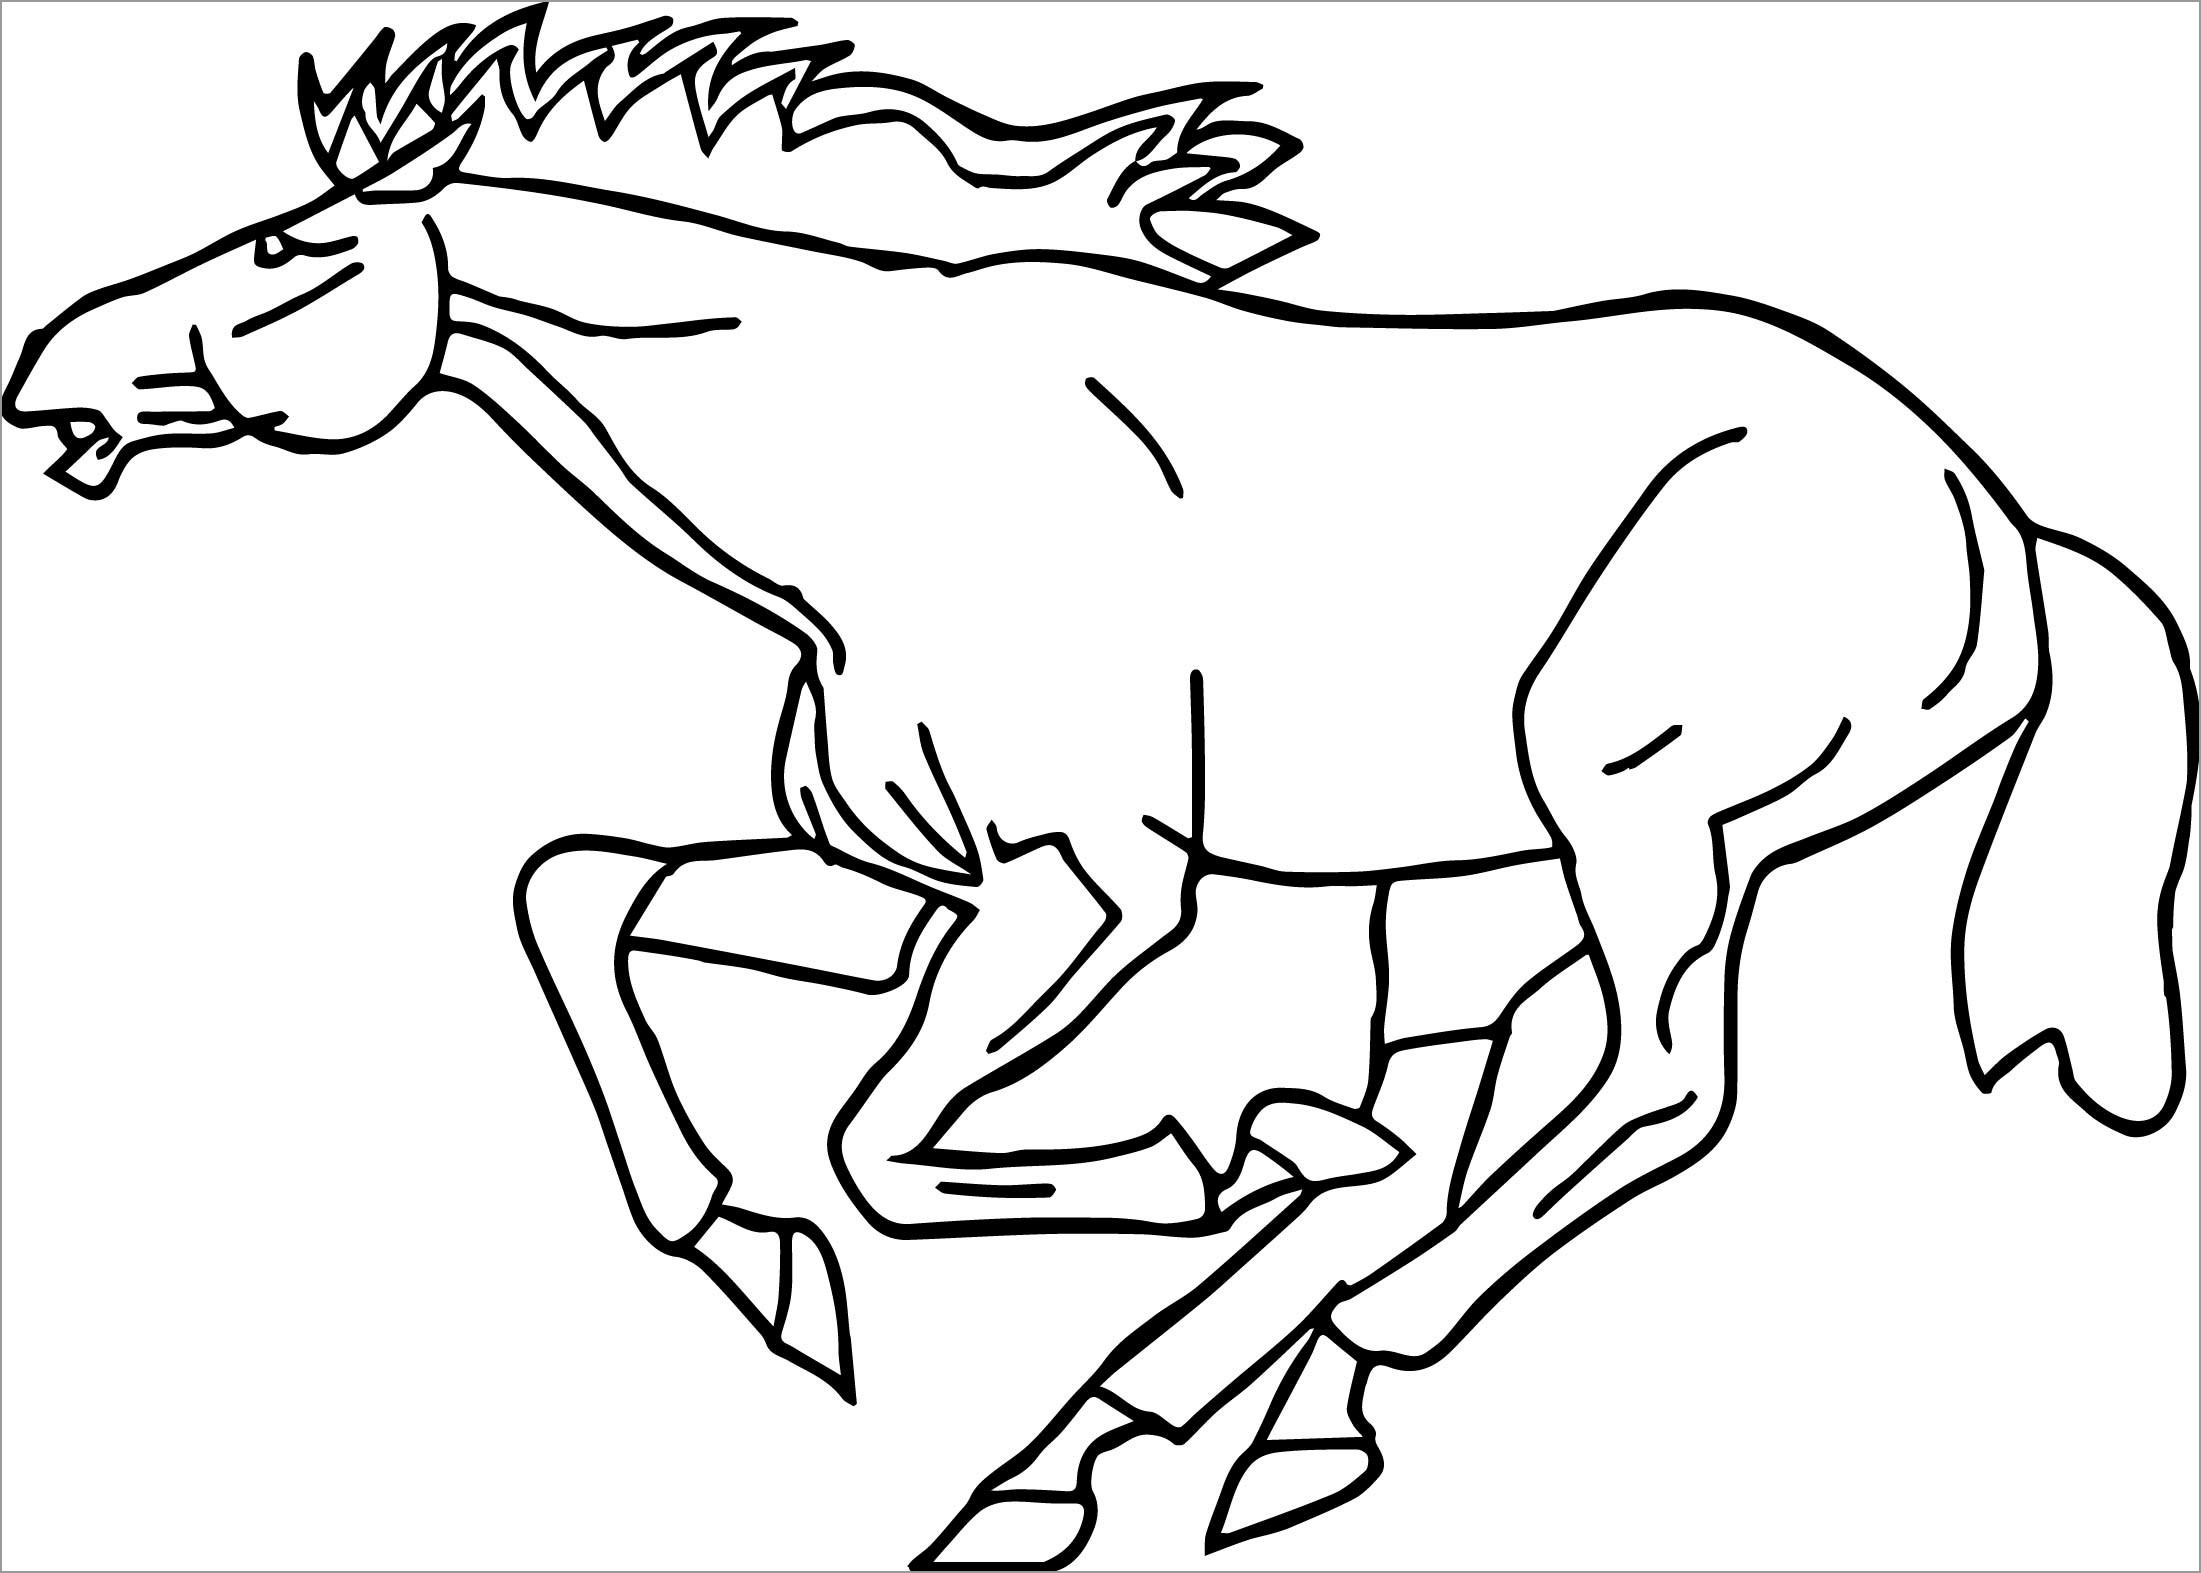 Horse Coloring Pages for Kids